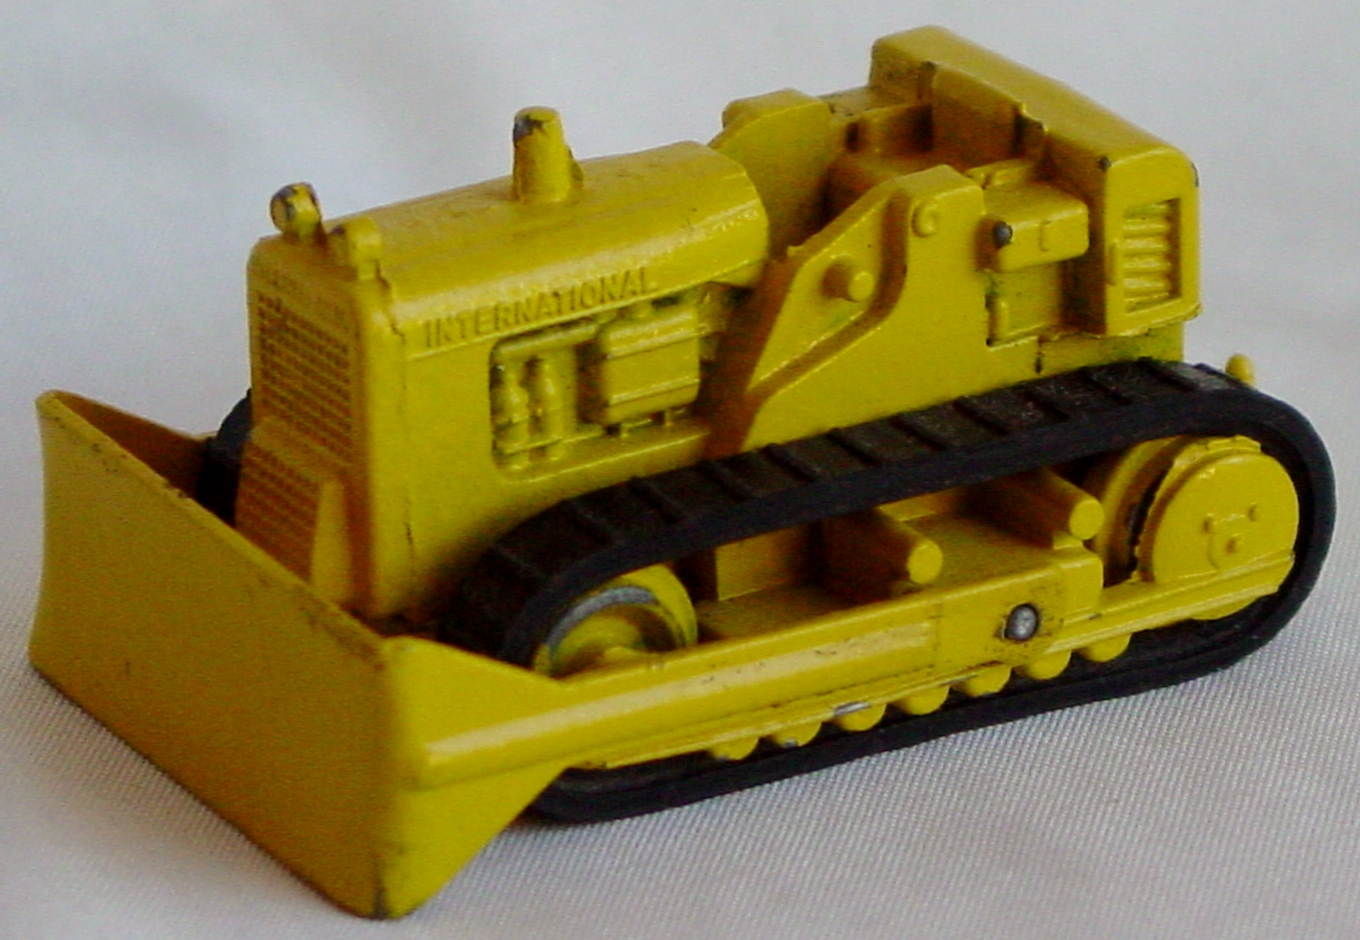 87 - MERCURY Lil Toy 101 Dozer pale Yellow 2 chips